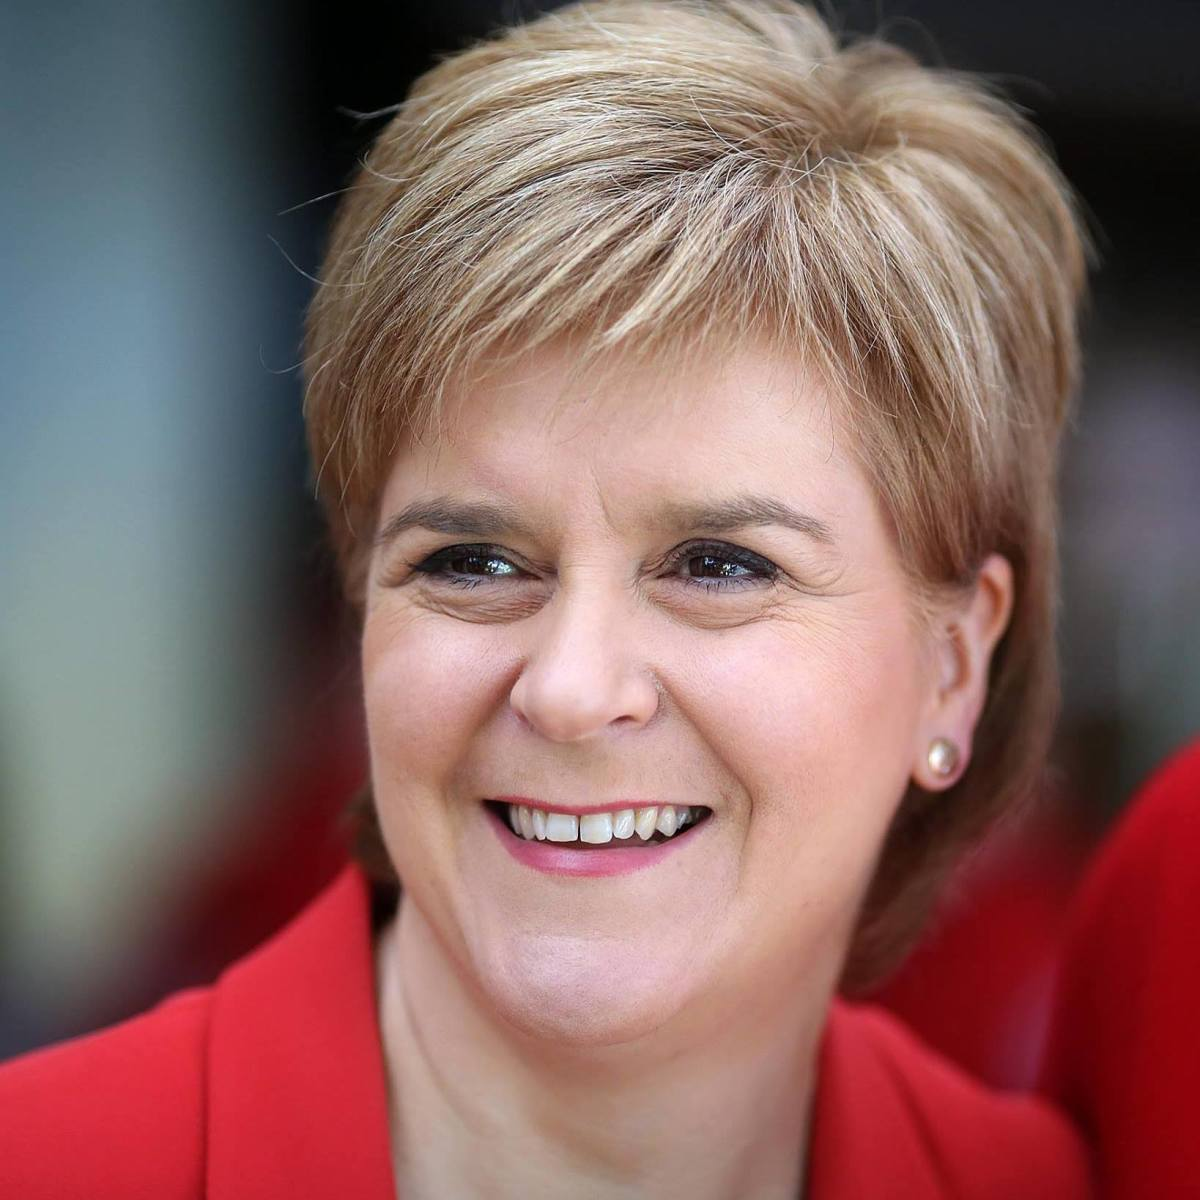 Nicola Sturgeon, Leader of the SNP in Scotland and First minister of Scotland.